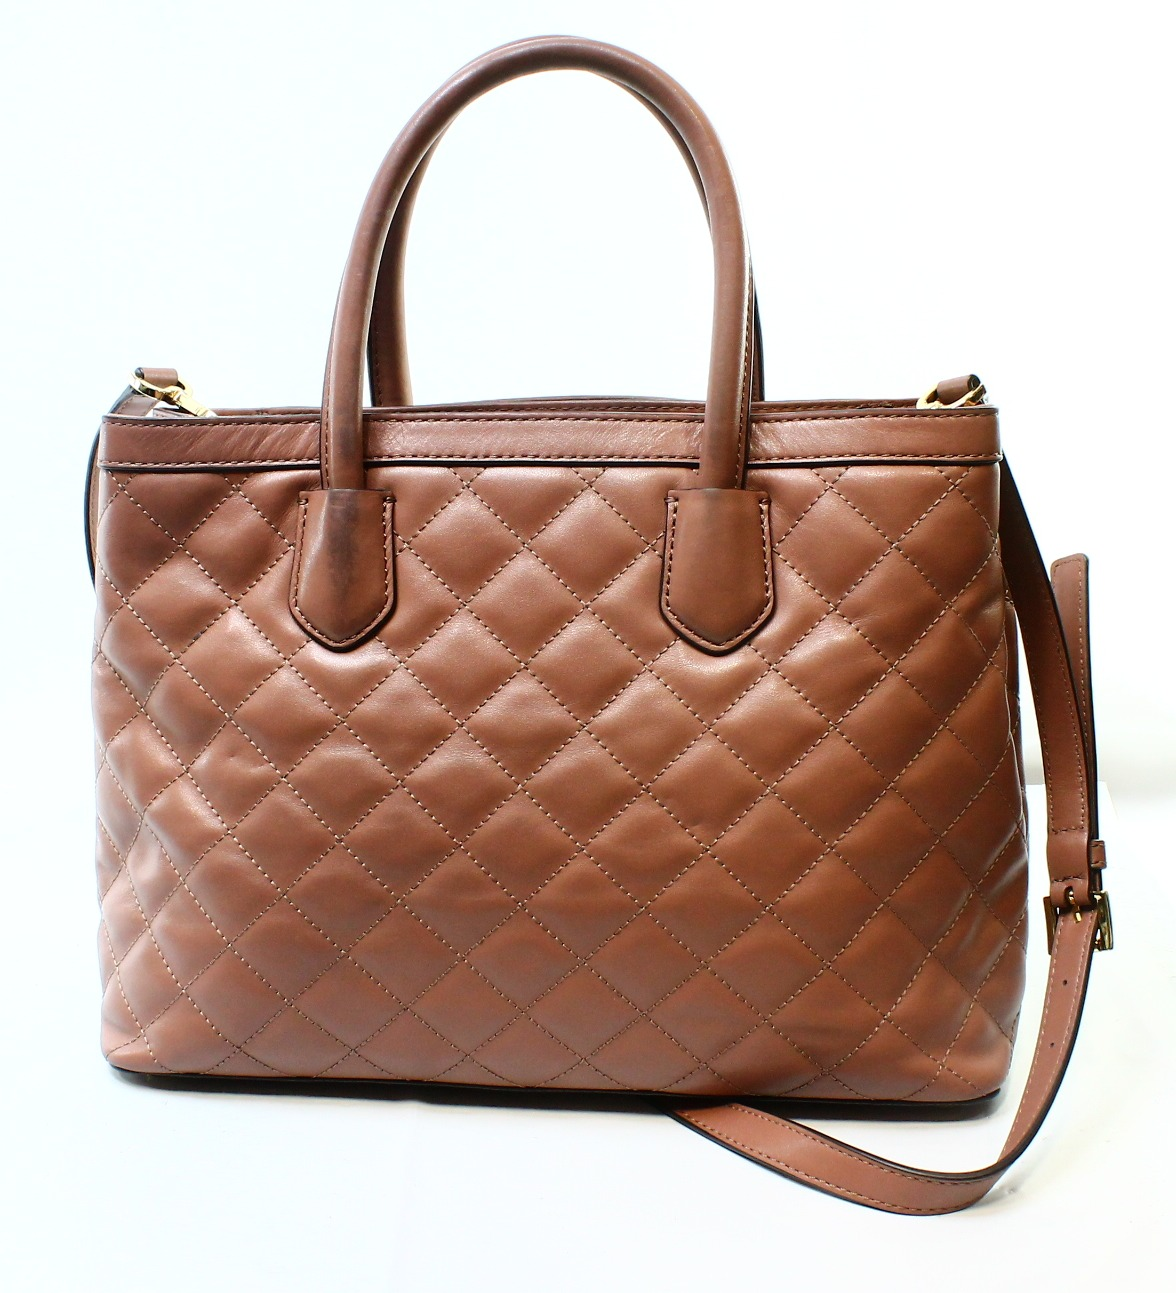 Michael Kors Pink Dusty Rose Leather Quilted Hannah